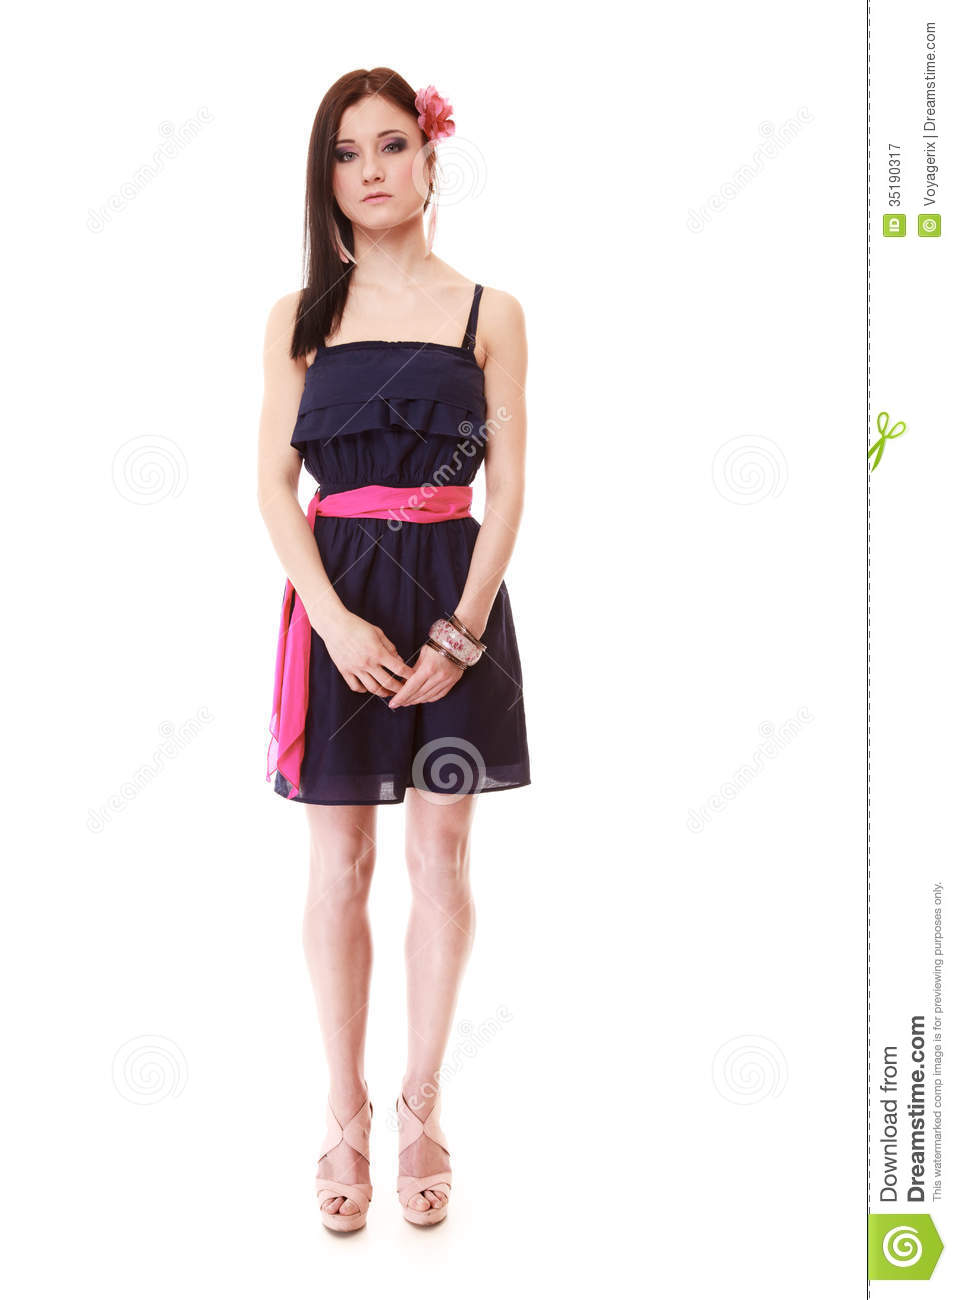 Girl in summer style fashion photo isolated royalty free stock photography image 35190317 Fashion style girl pic